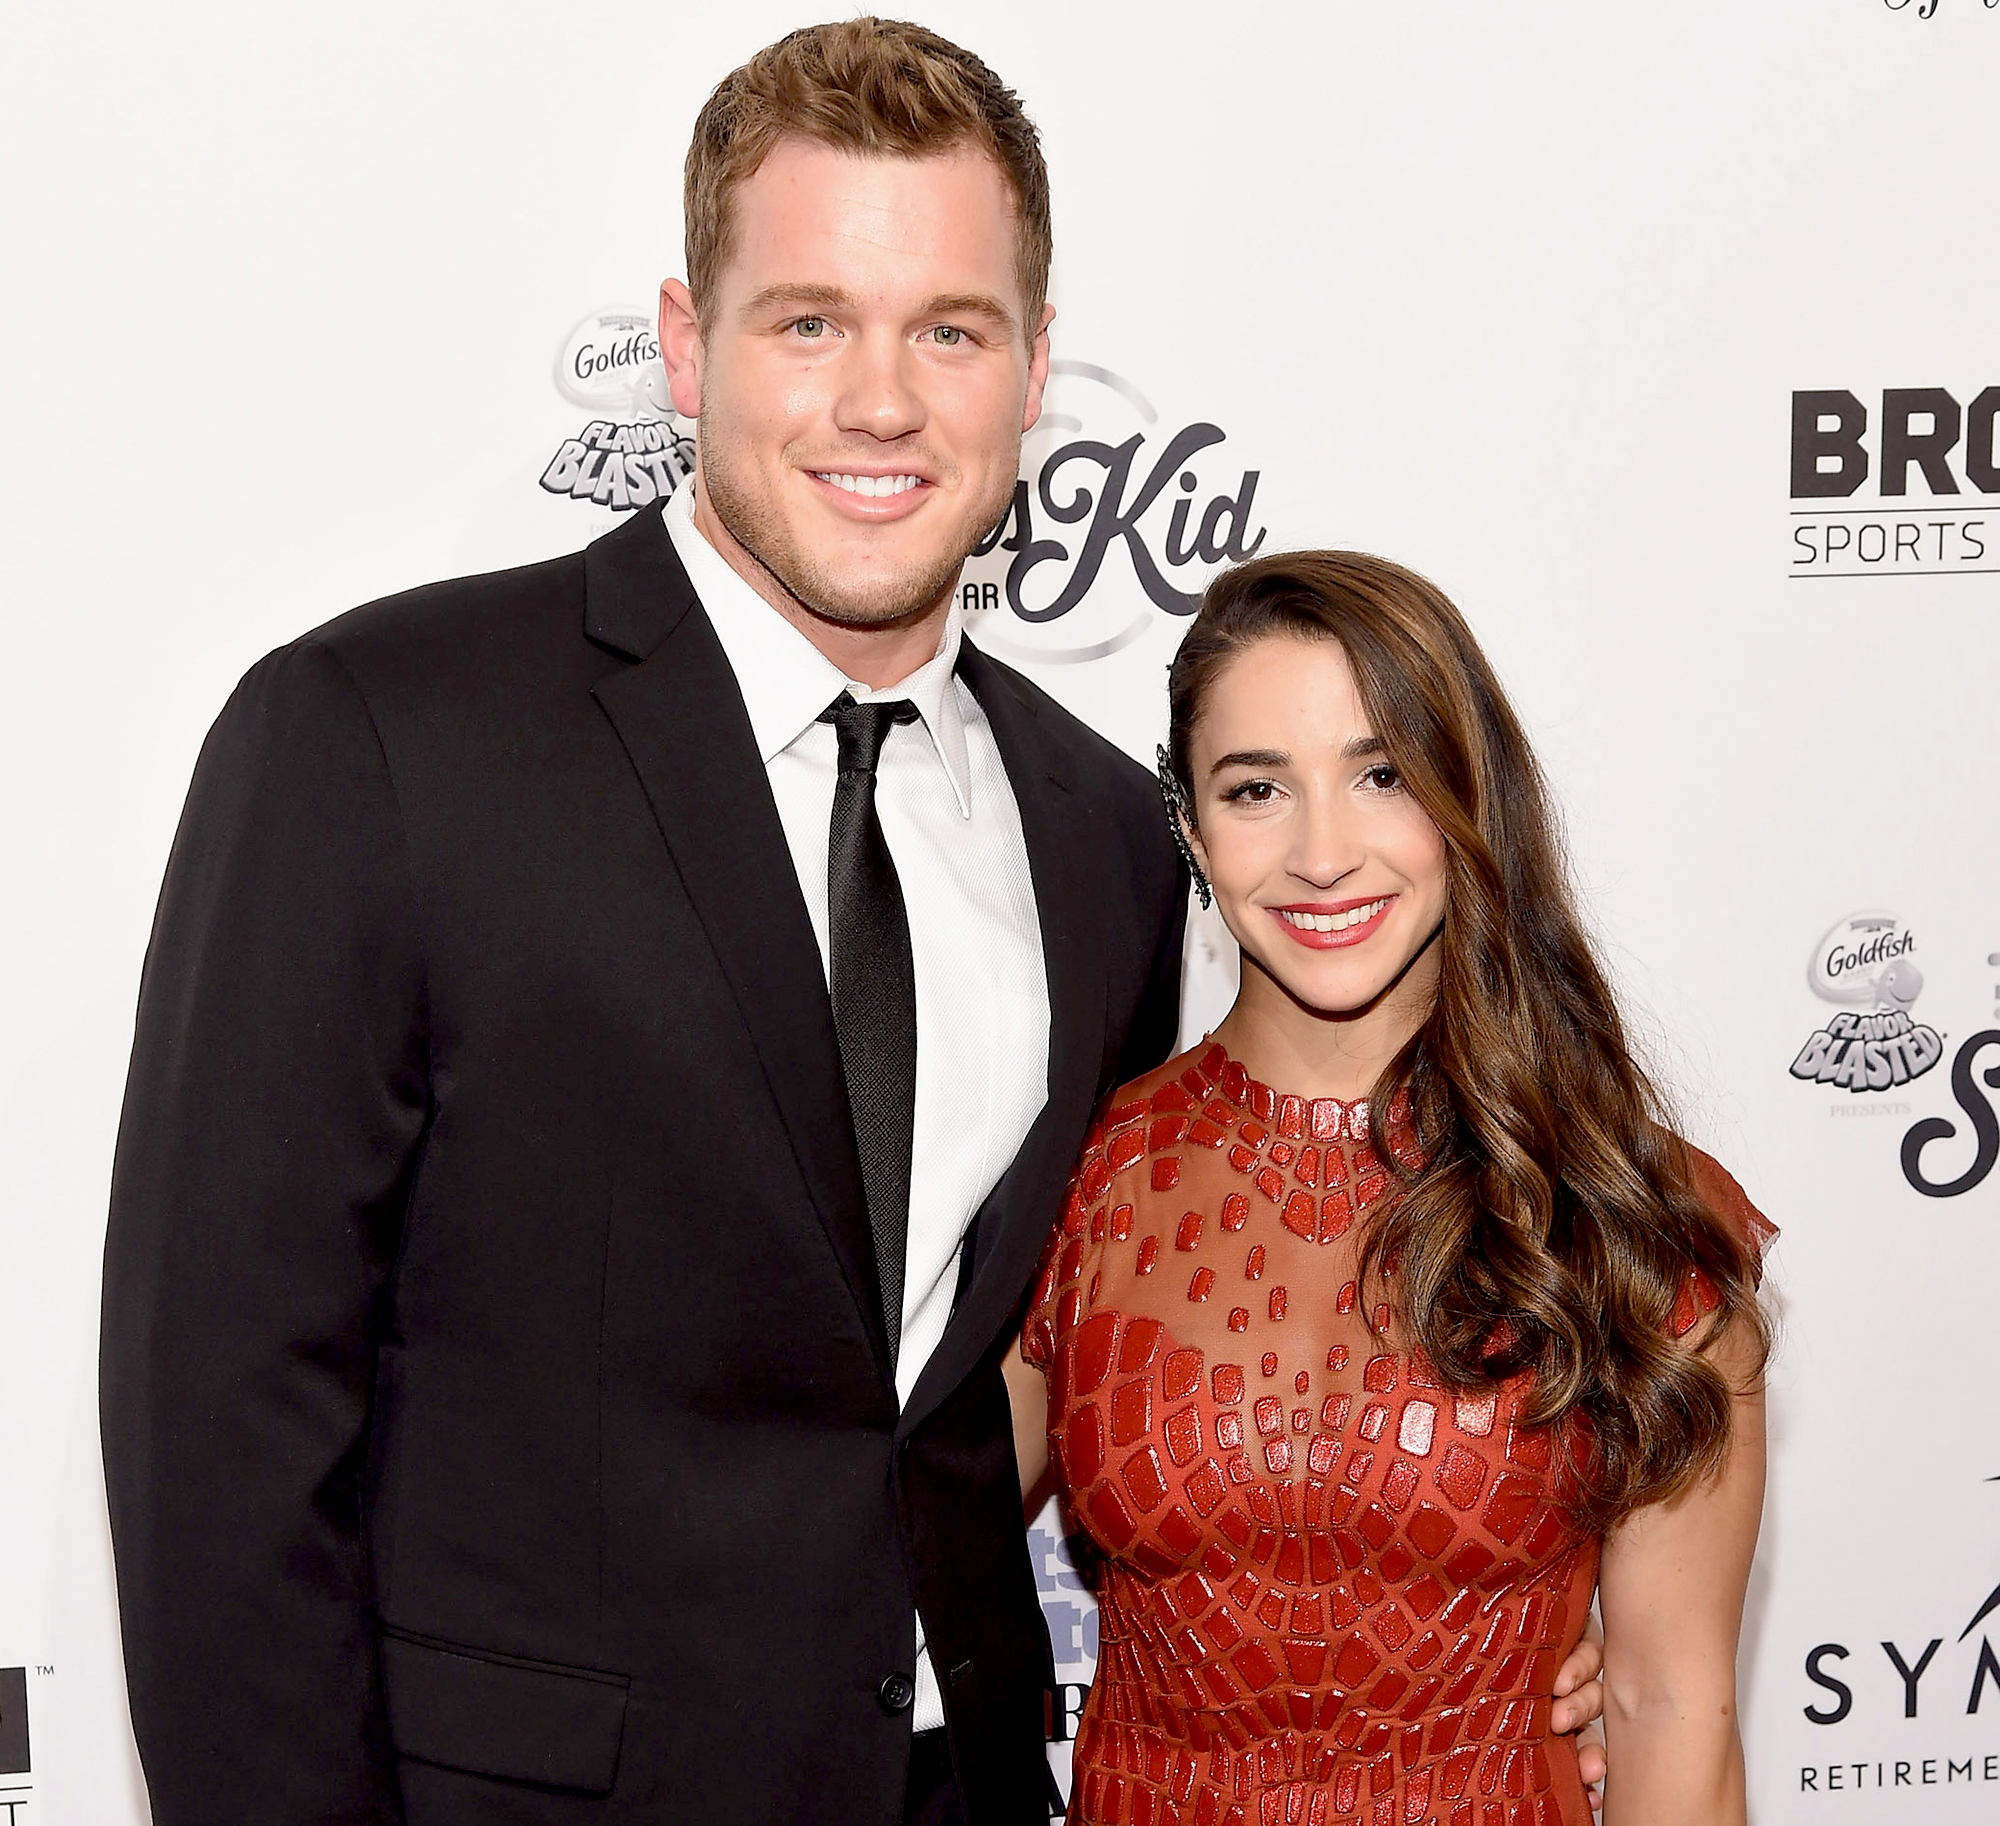 Colton-Underwood-talks-ex-Aly-Raisman - Colton Underwood and Aly Raisman attend the 2016 Sports Illustrated Sportsperson of the Year at Barclays Center of Brooklyn on December 12, 2016 in the Brooklyn borough of New York City.